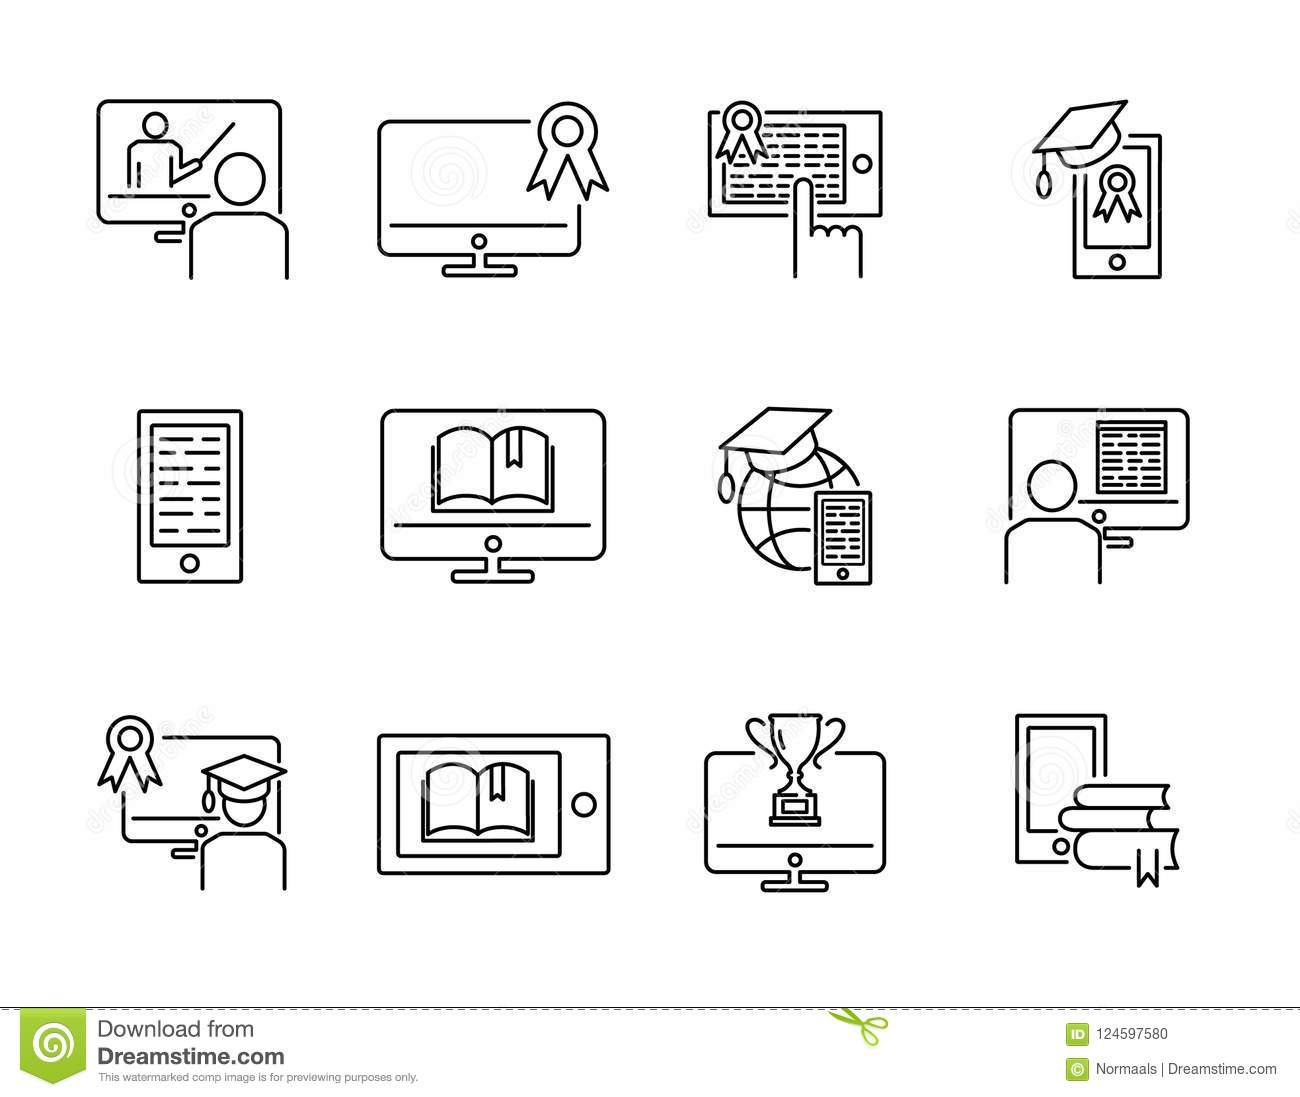 Online training vector illustration icon collection set. Distance internet e learning concept with computer, tablet or phone.